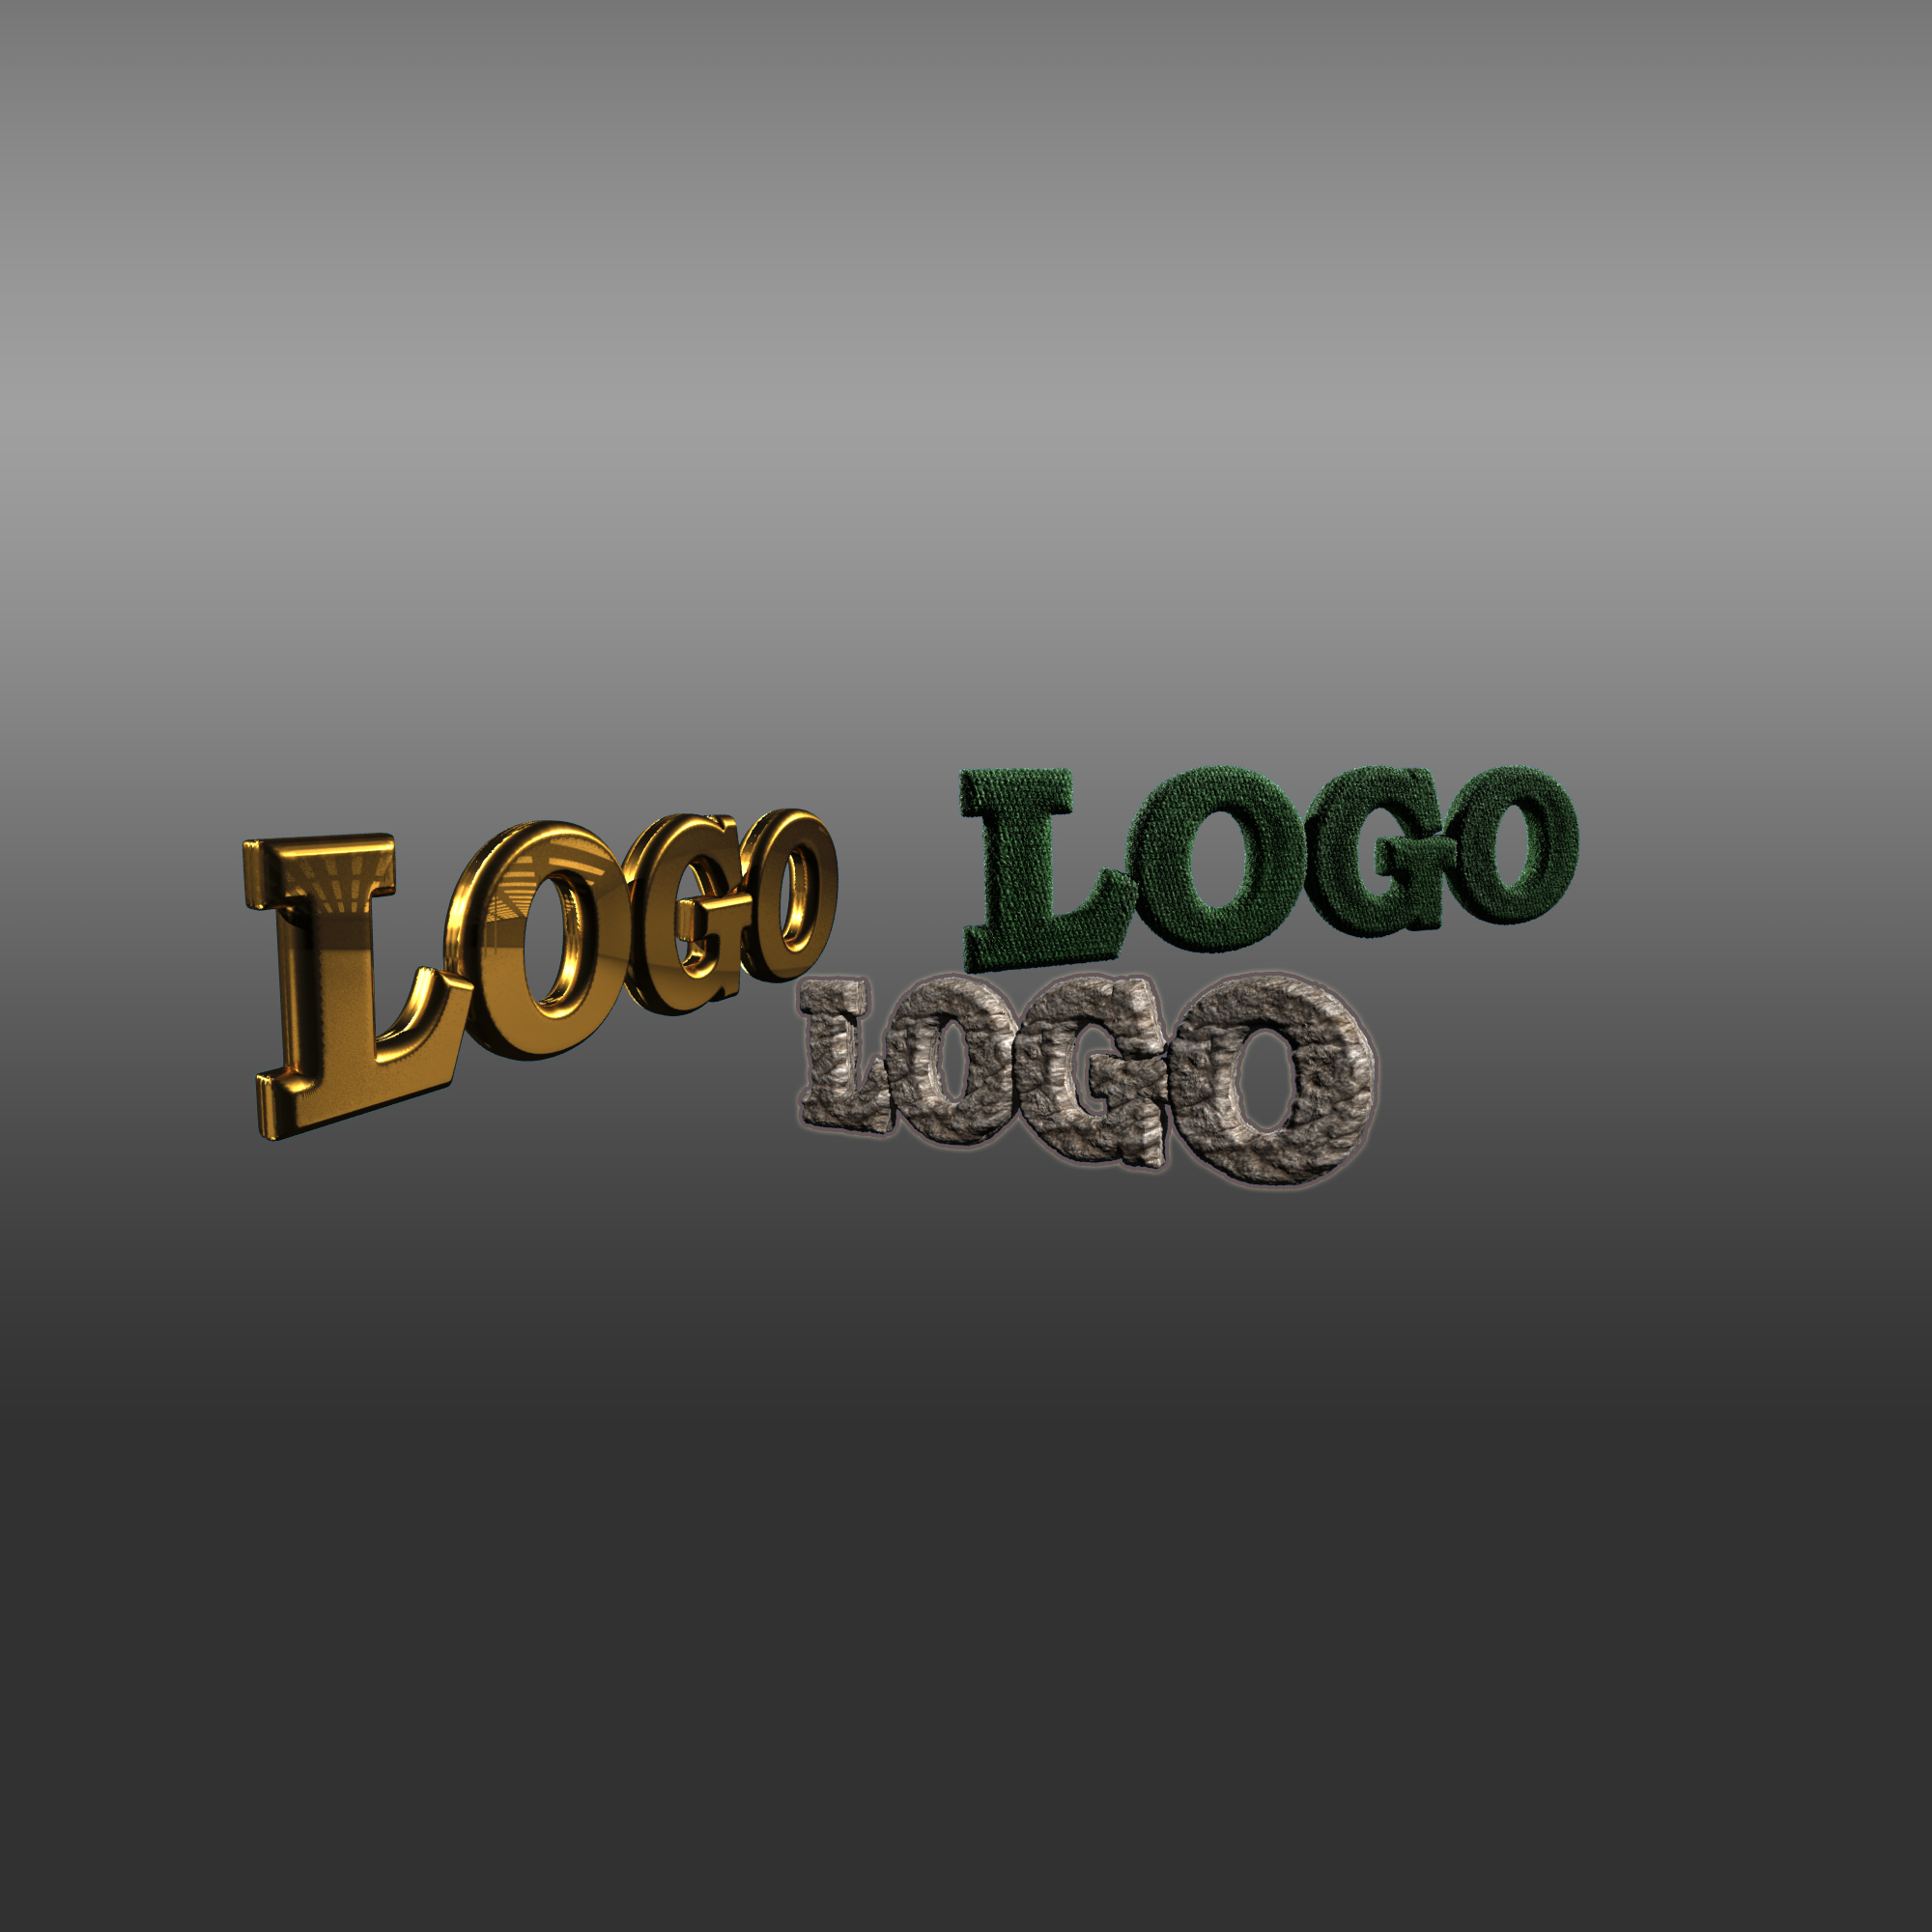 Model, animate and render your logo or name